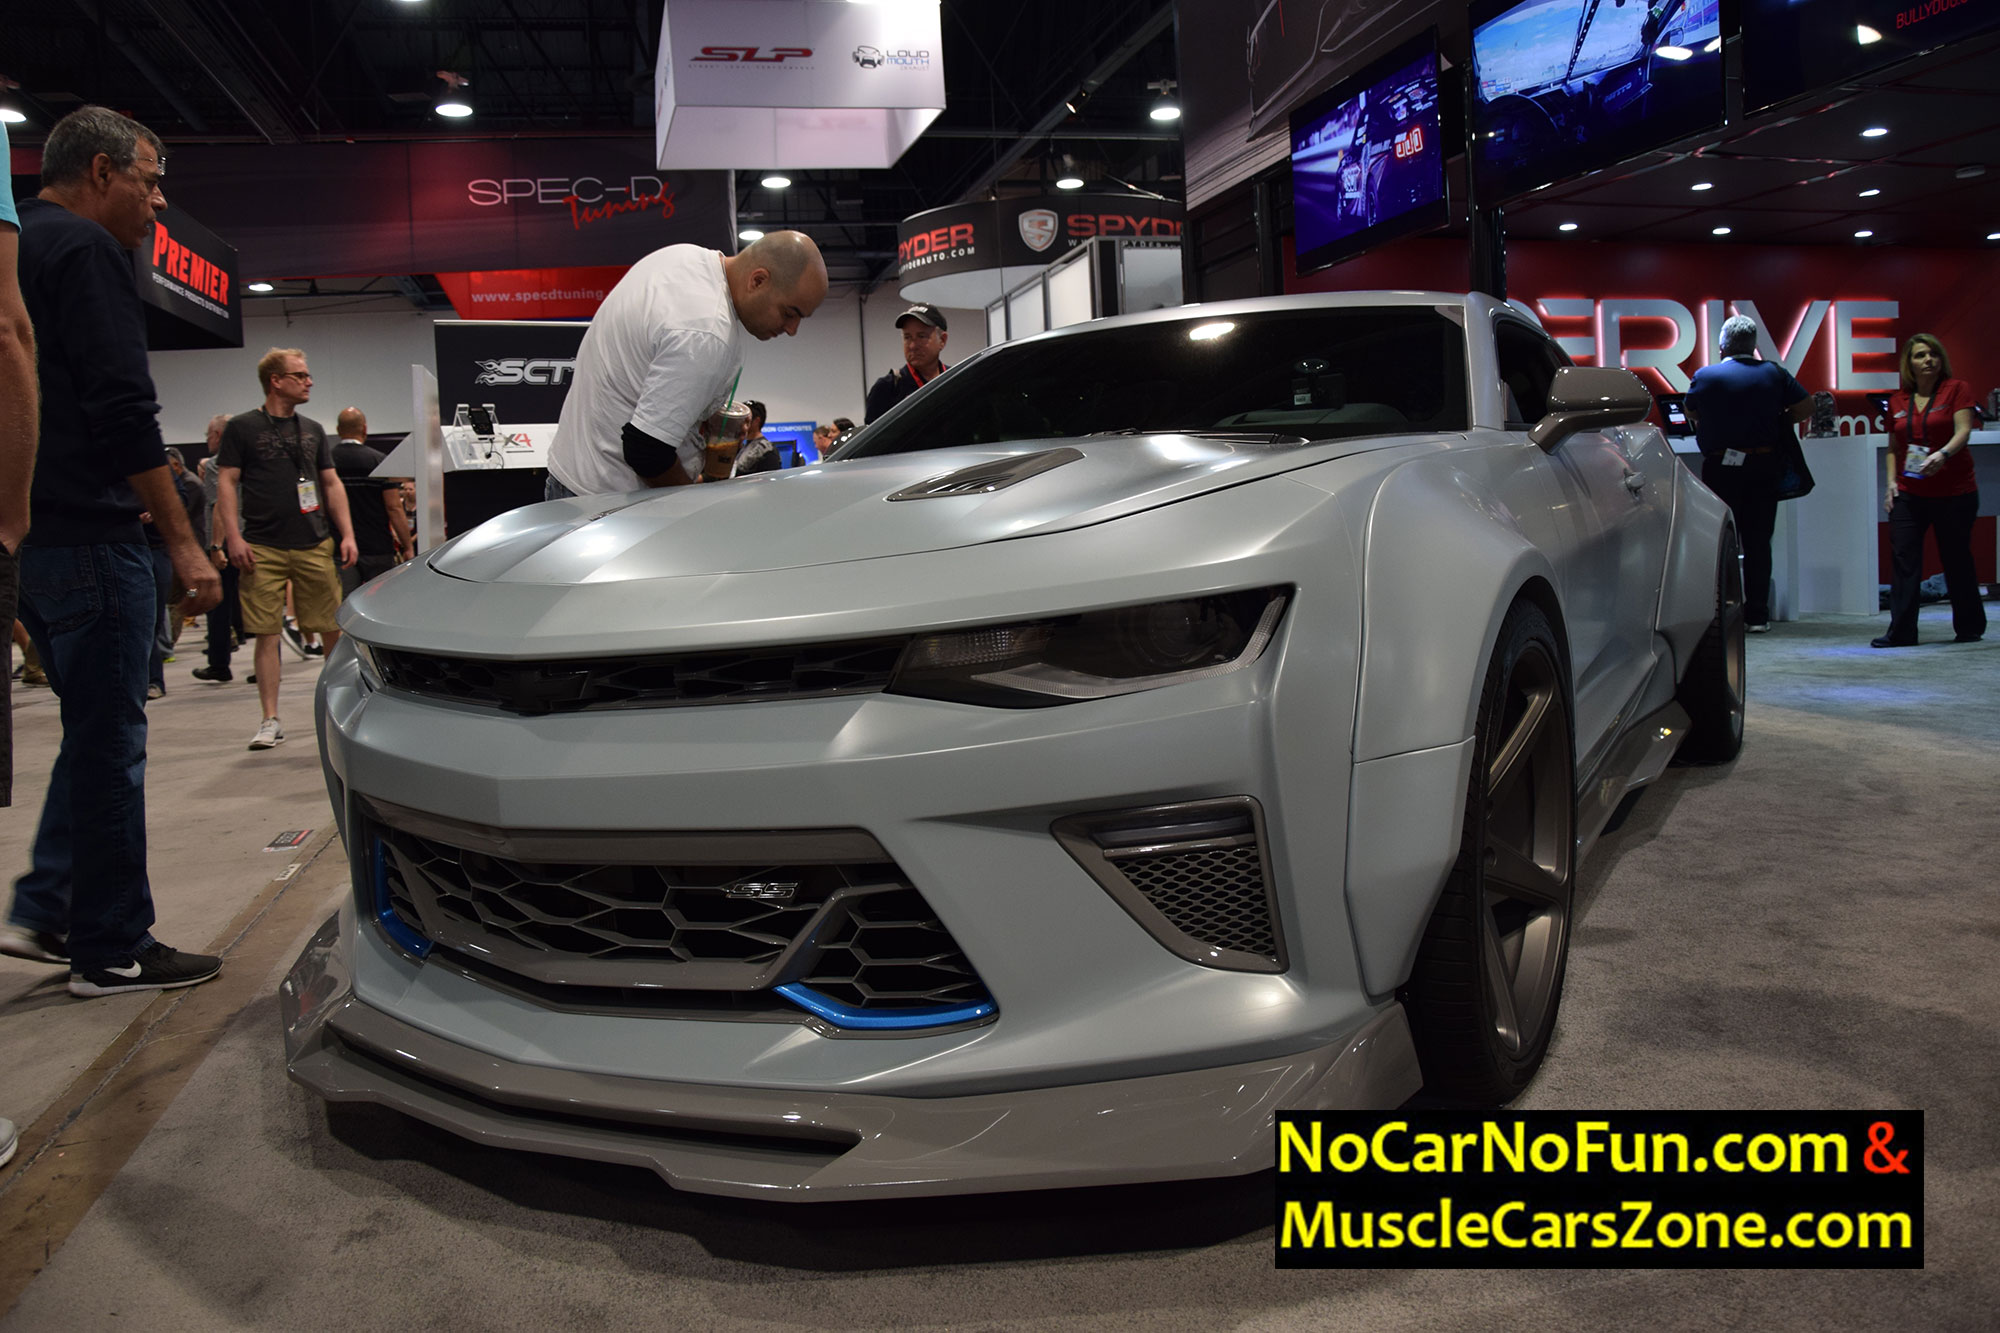 6Th Gen Camaro >> Musclecarszone.com Presents You The Very Best Rides Of The SEMA Show 2016 Vegas! Your Favorite ...